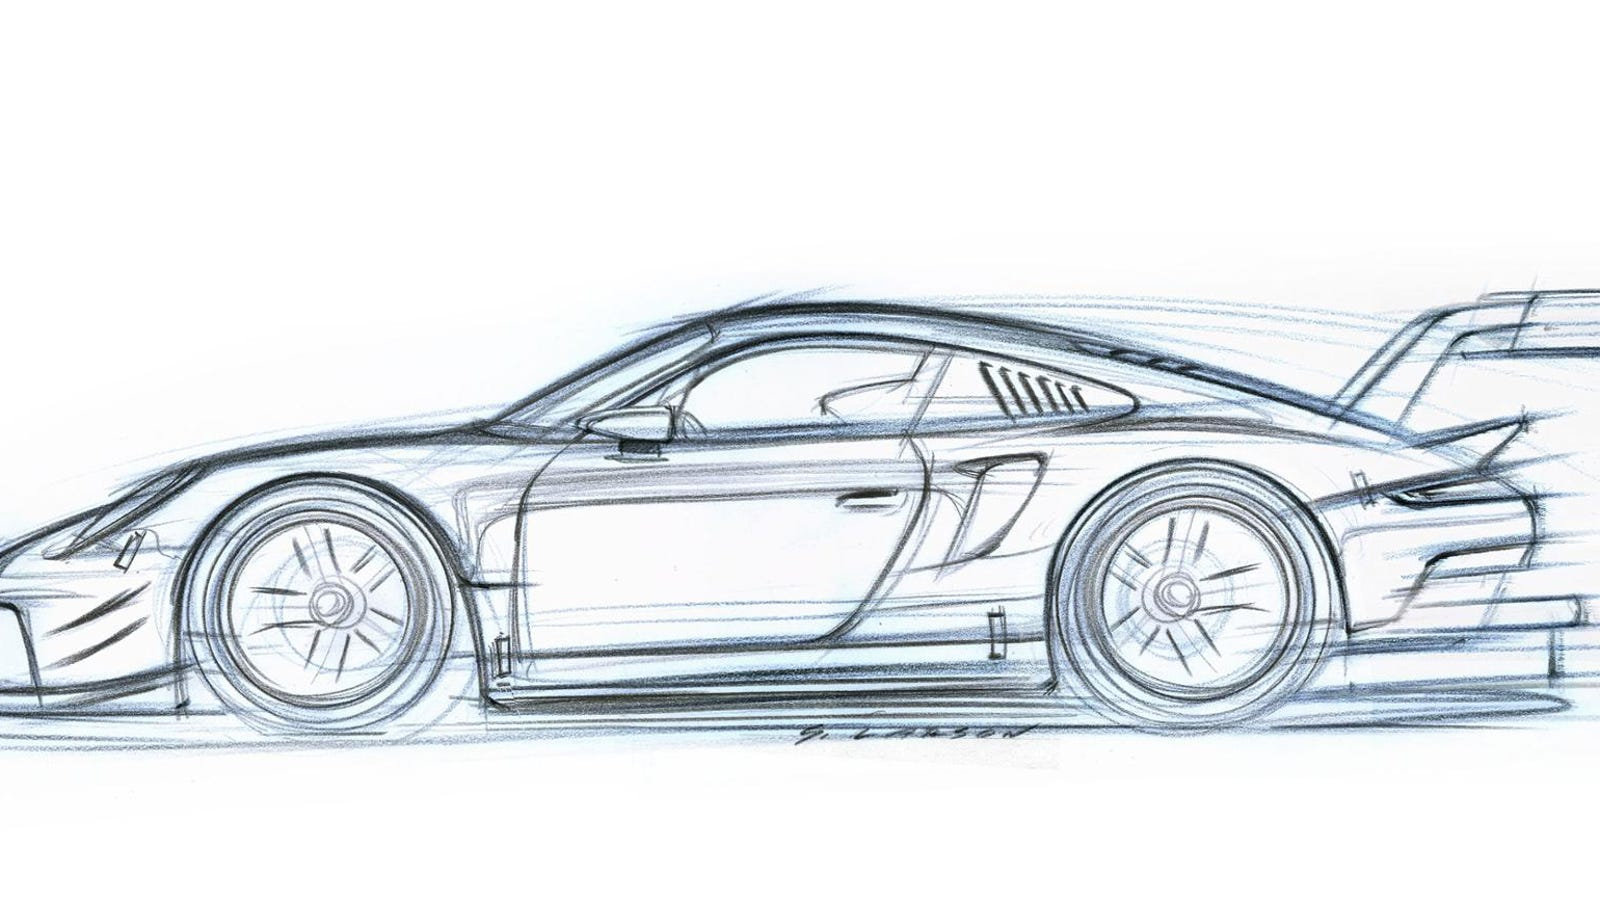 Even The Sketch Of The New Mid Engine Porsche 911 Rsr Race Car Is